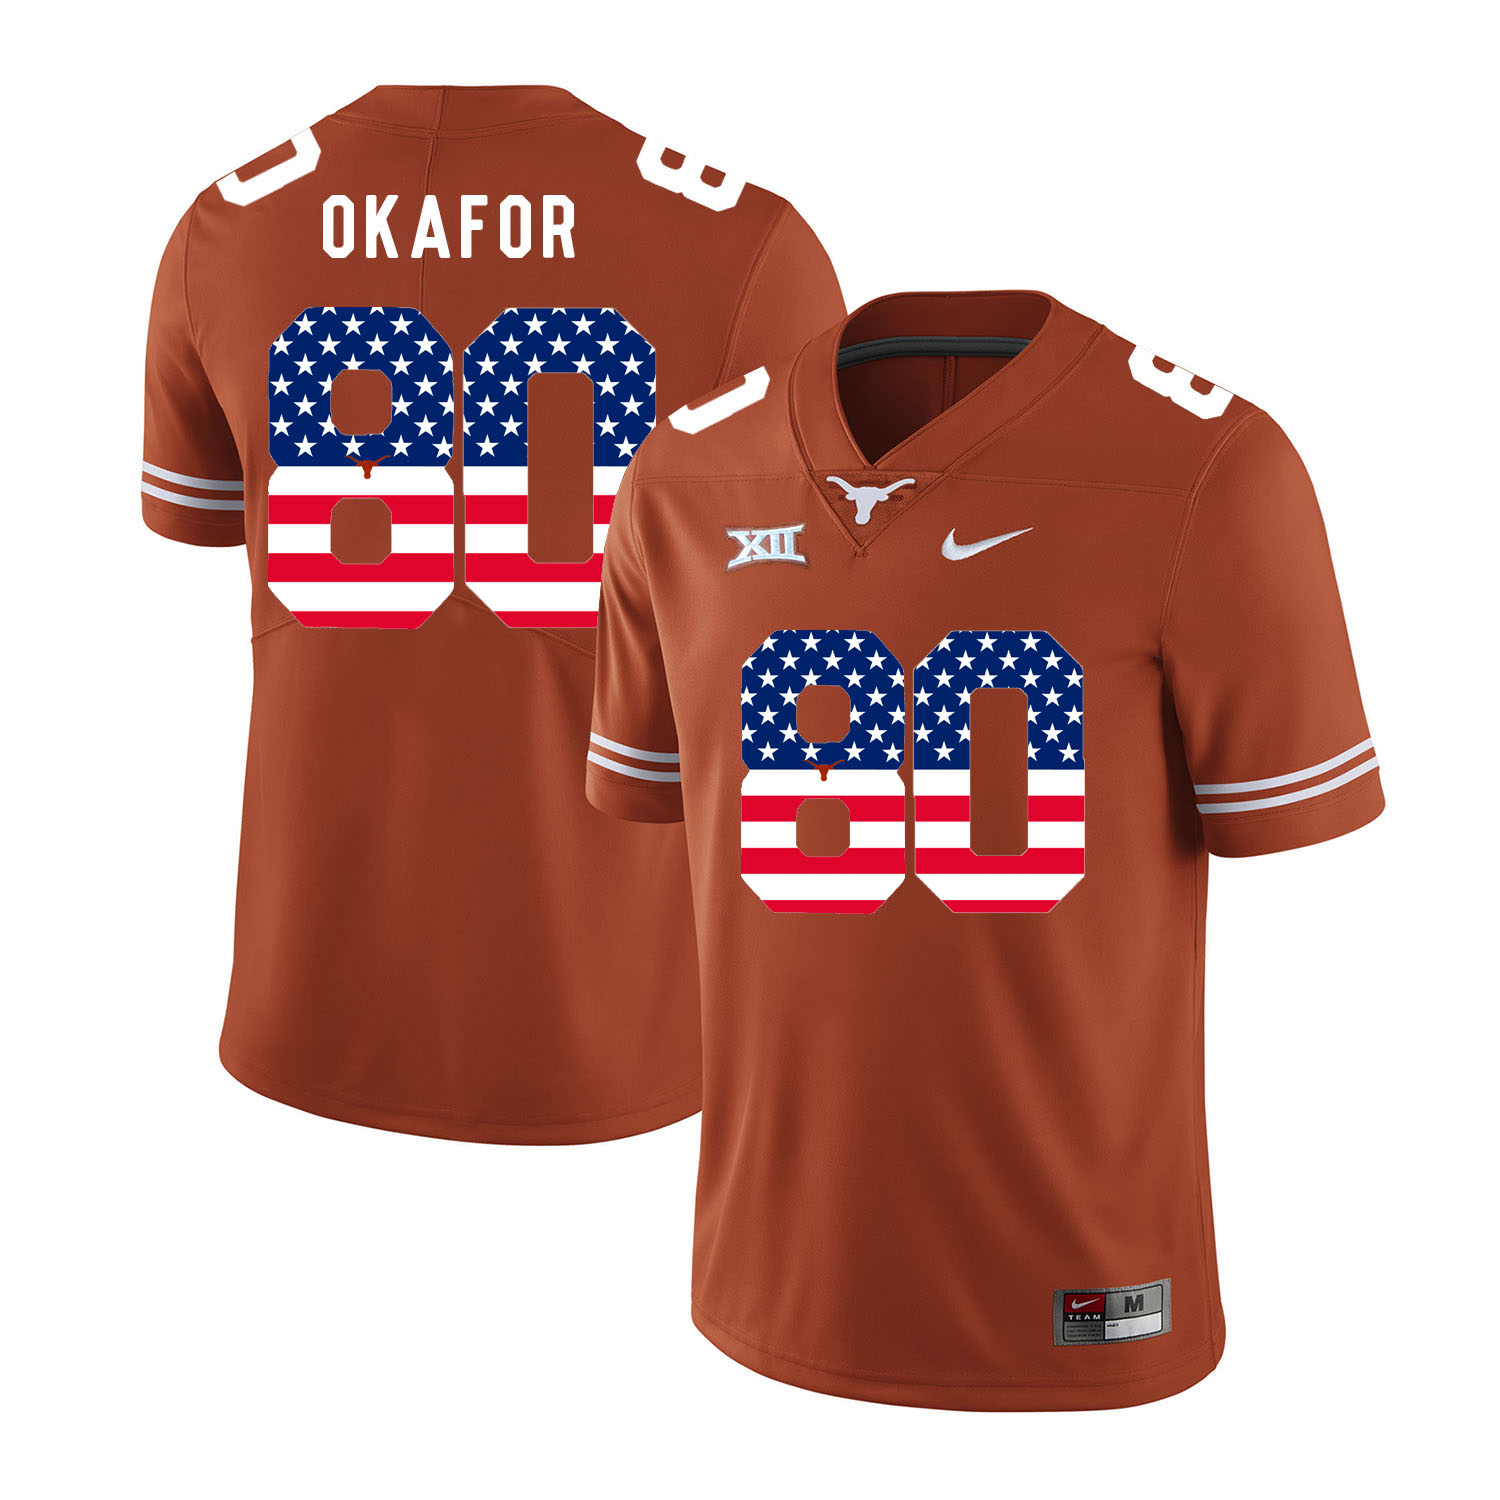 Texas Longhorns 80 Alex Okafor Orange USA Flag Nike College Football Jersey